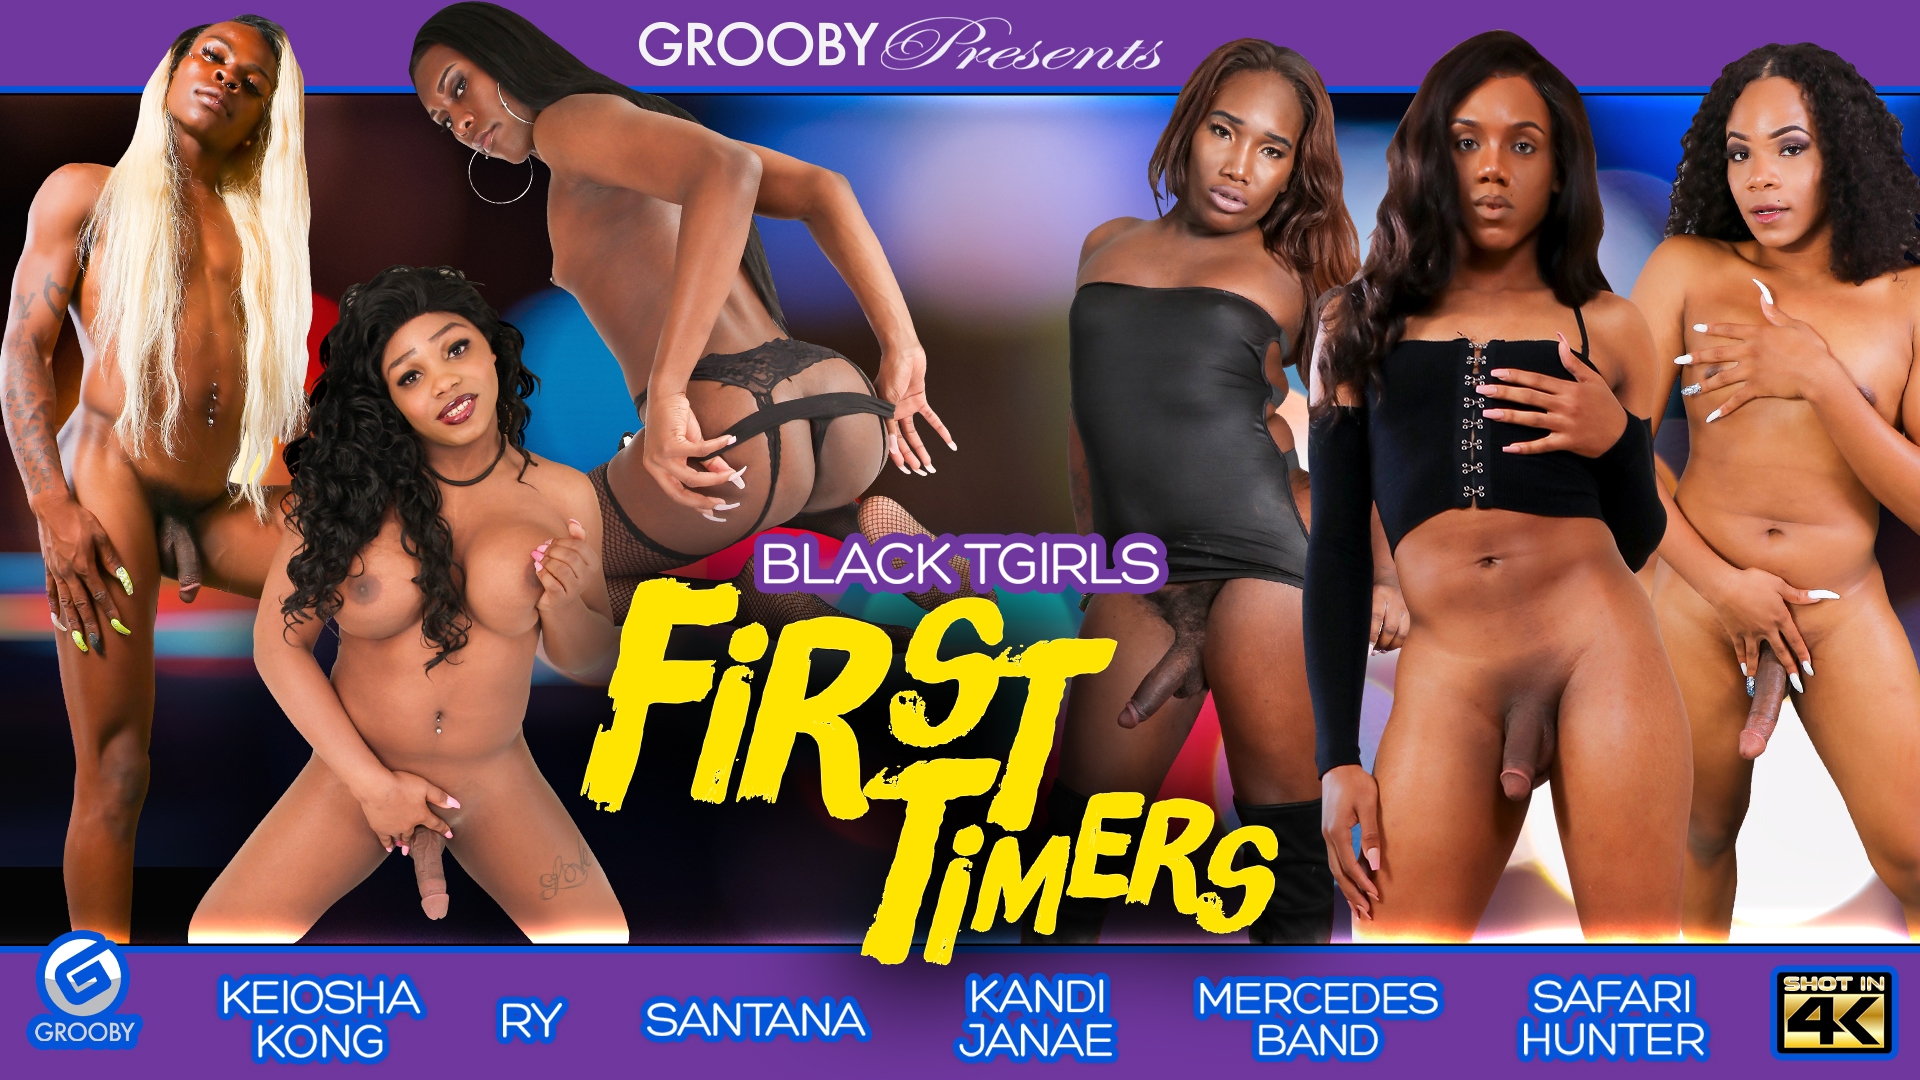 Black-Tgirls - First Timers - DVD Trailer